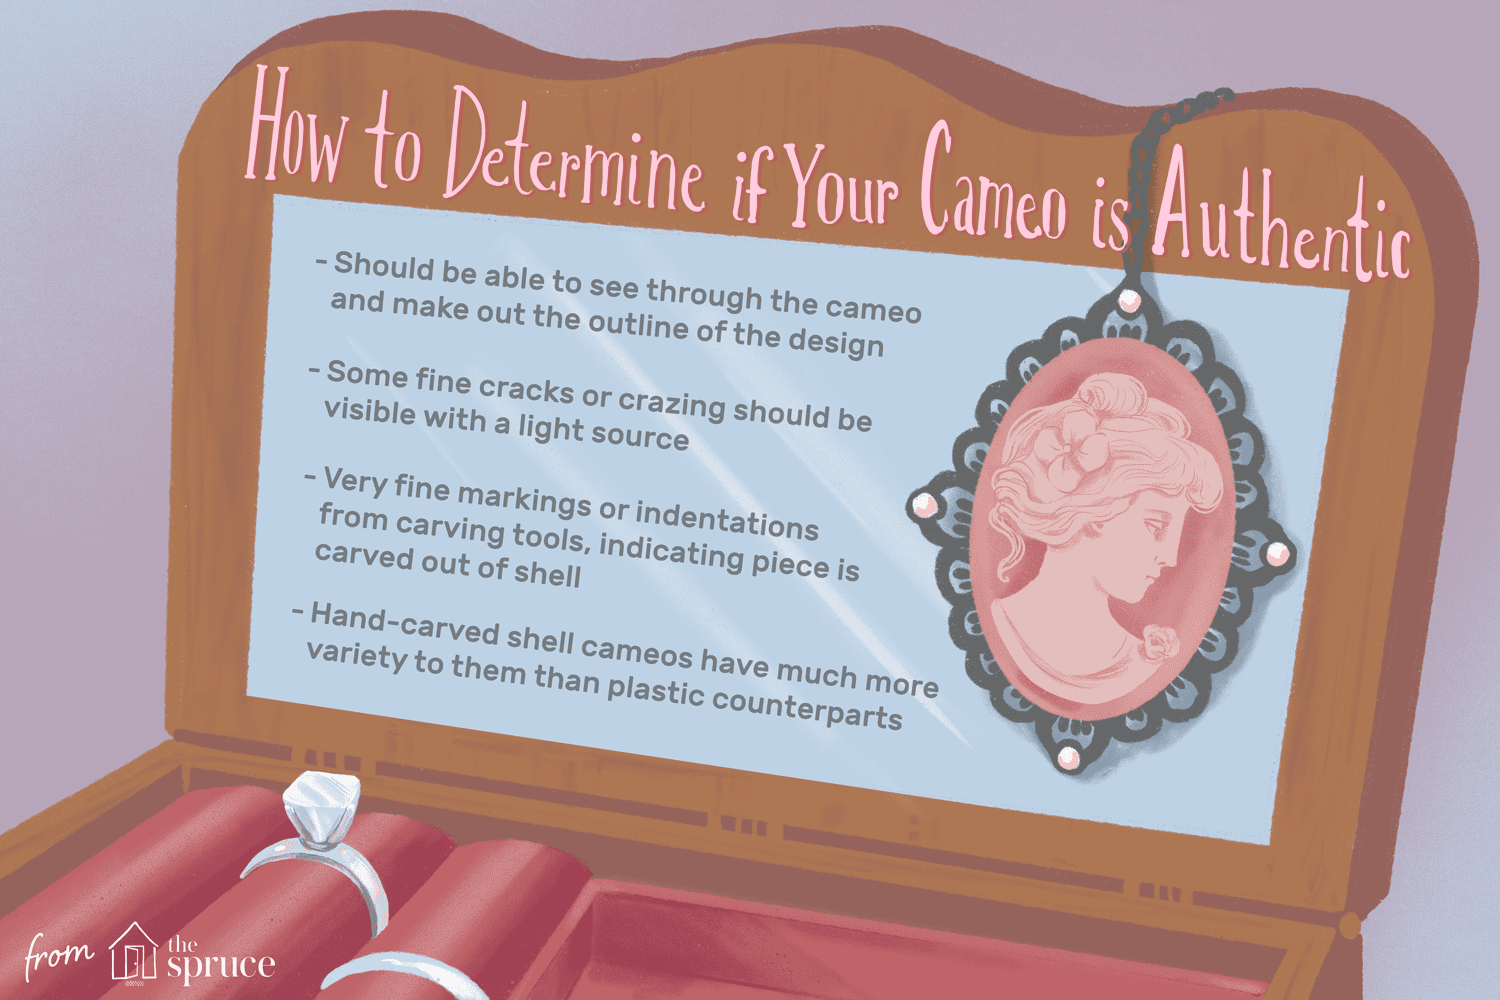 An illustration showing how to determine if your cameo jewelry is authentic